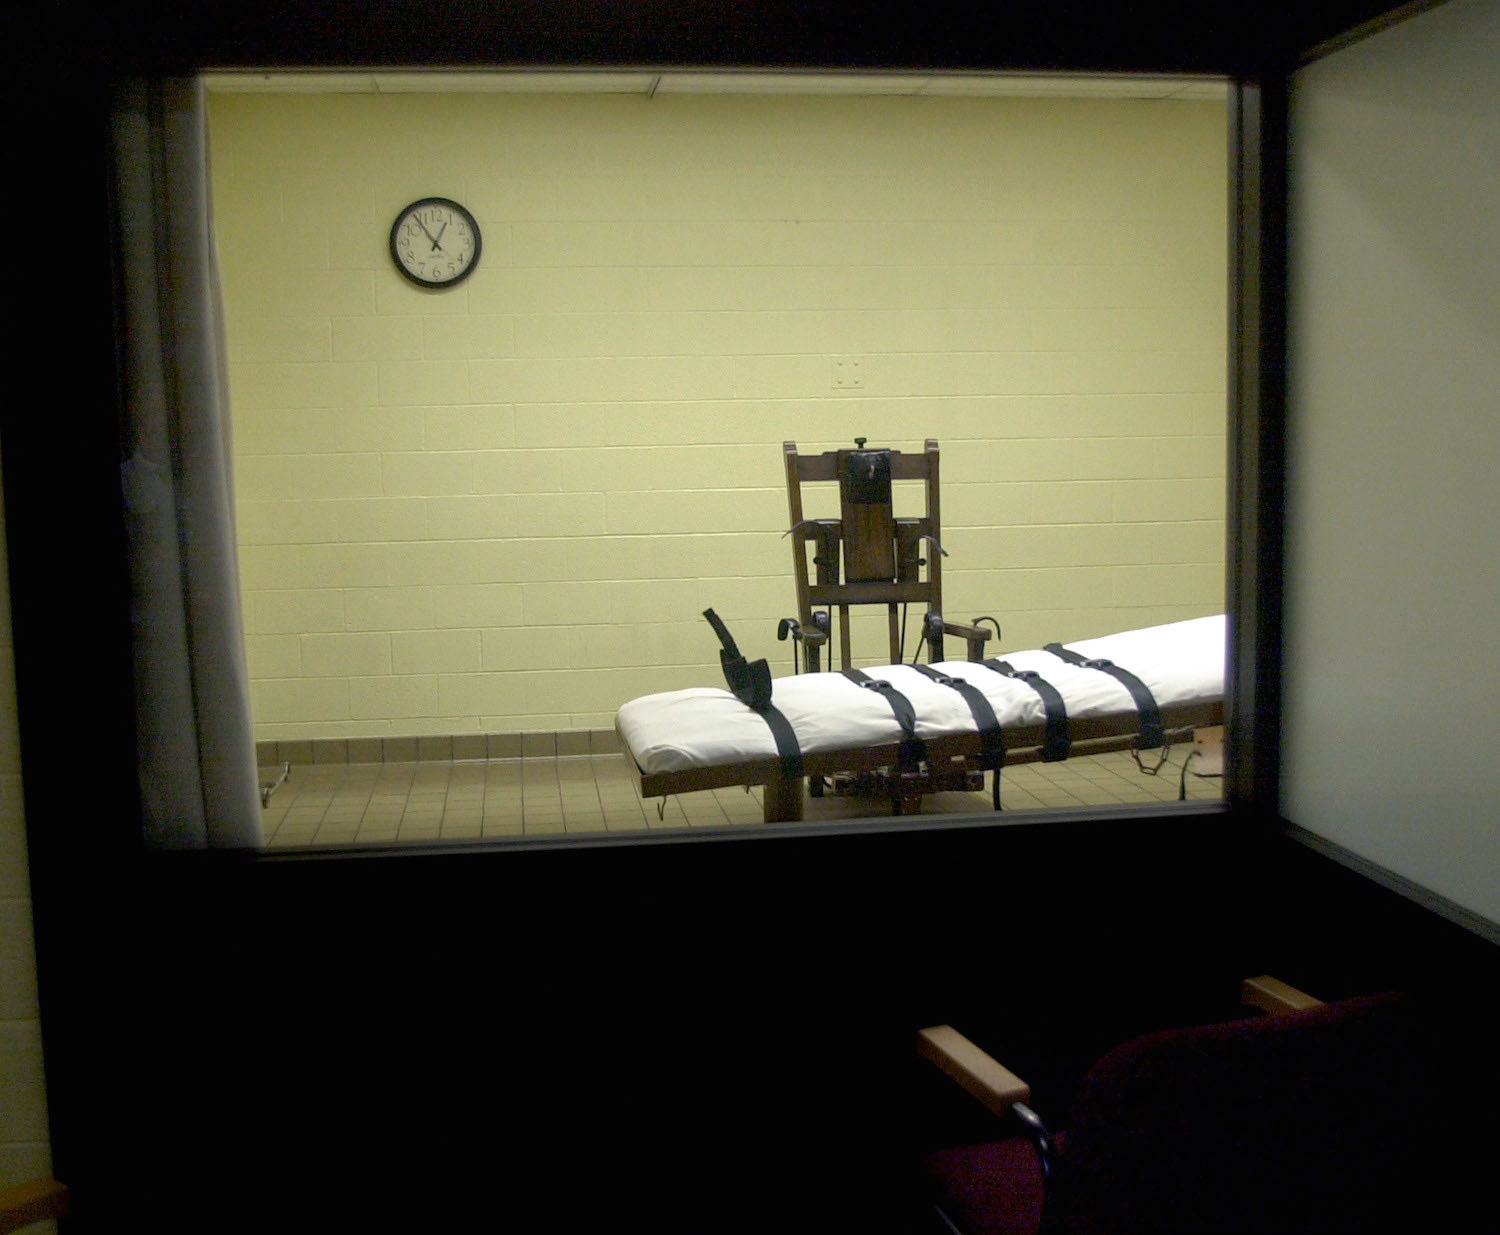 Federal Judge Criticizes Death Penalty — But Concludes Only Supreme Court Can End It